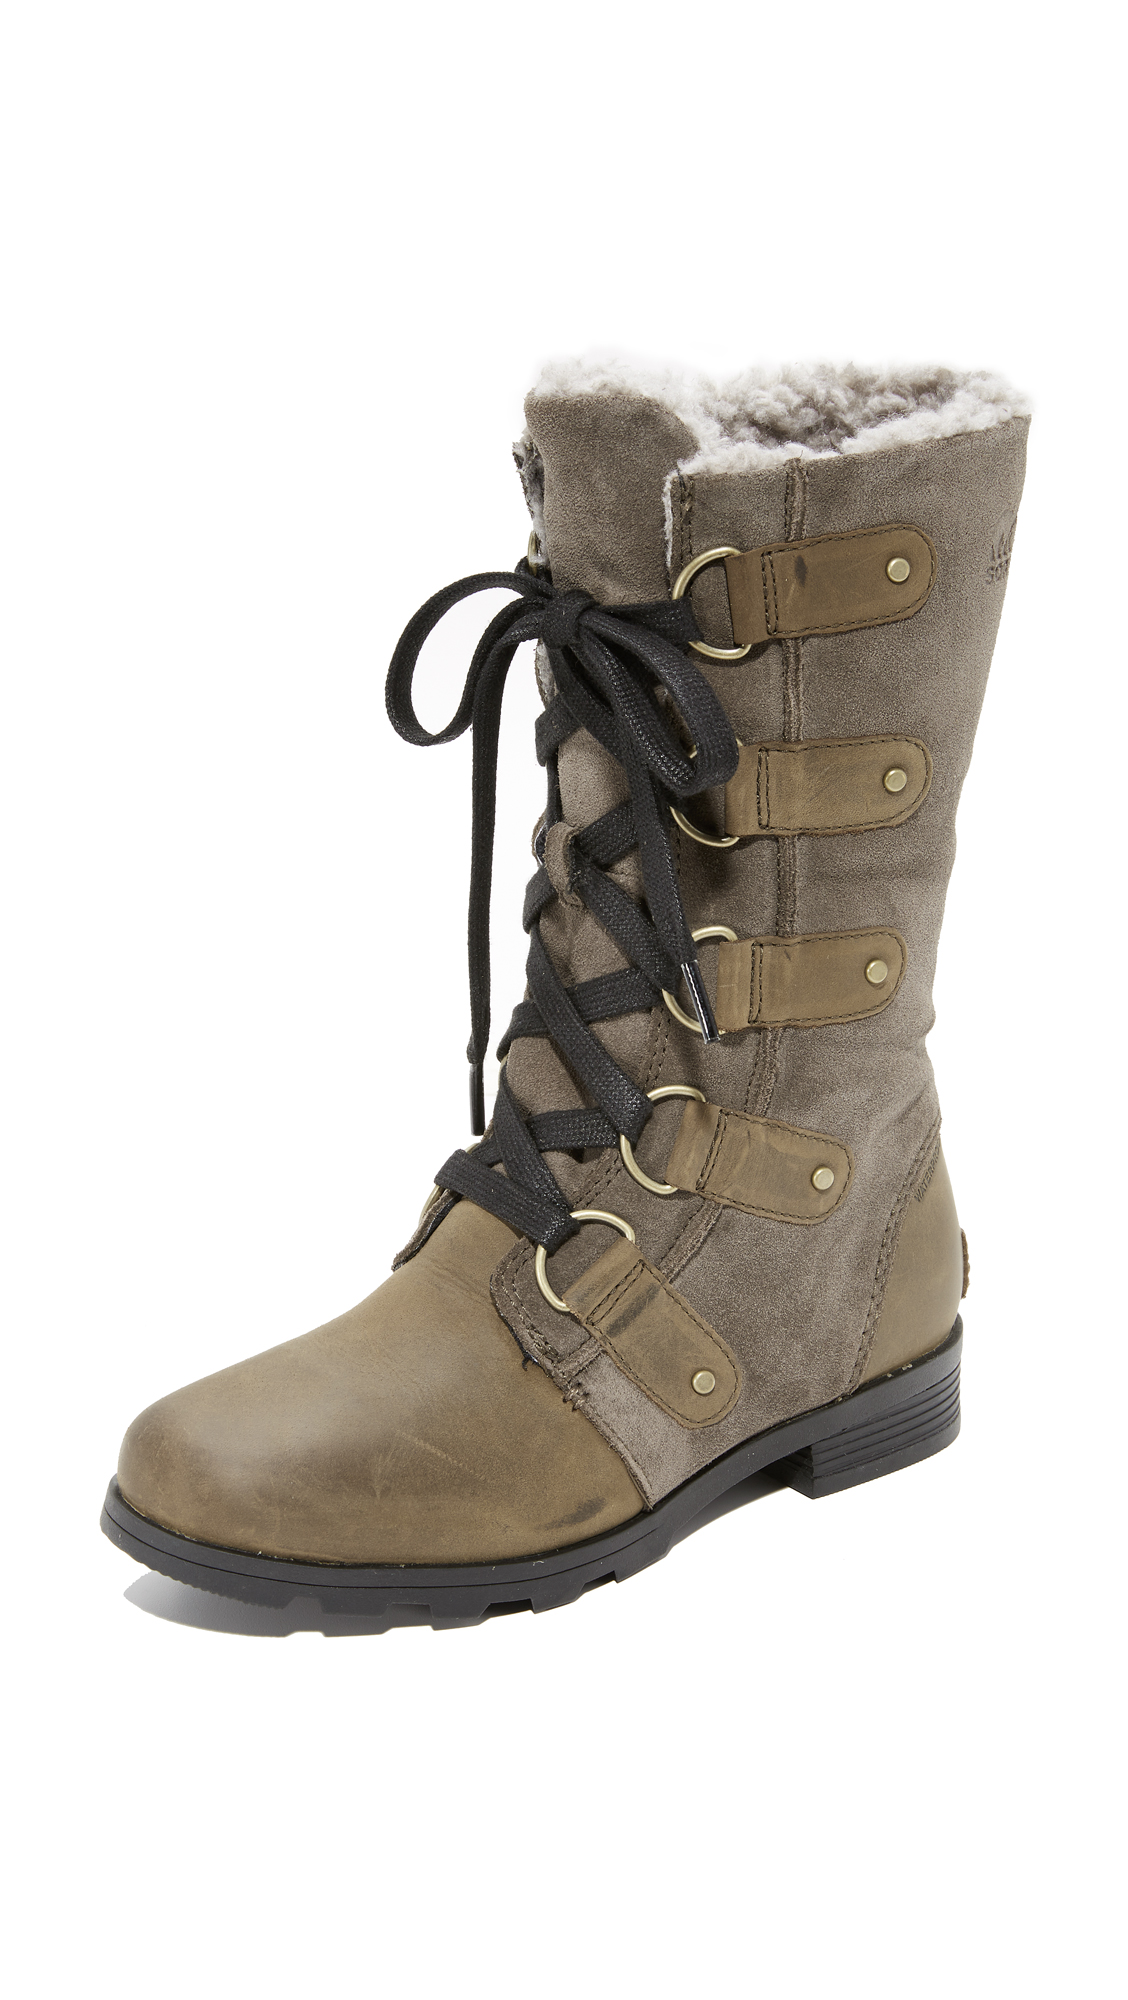 Photo of Sorel Emelie Lace Boots - buy Sorel shoes